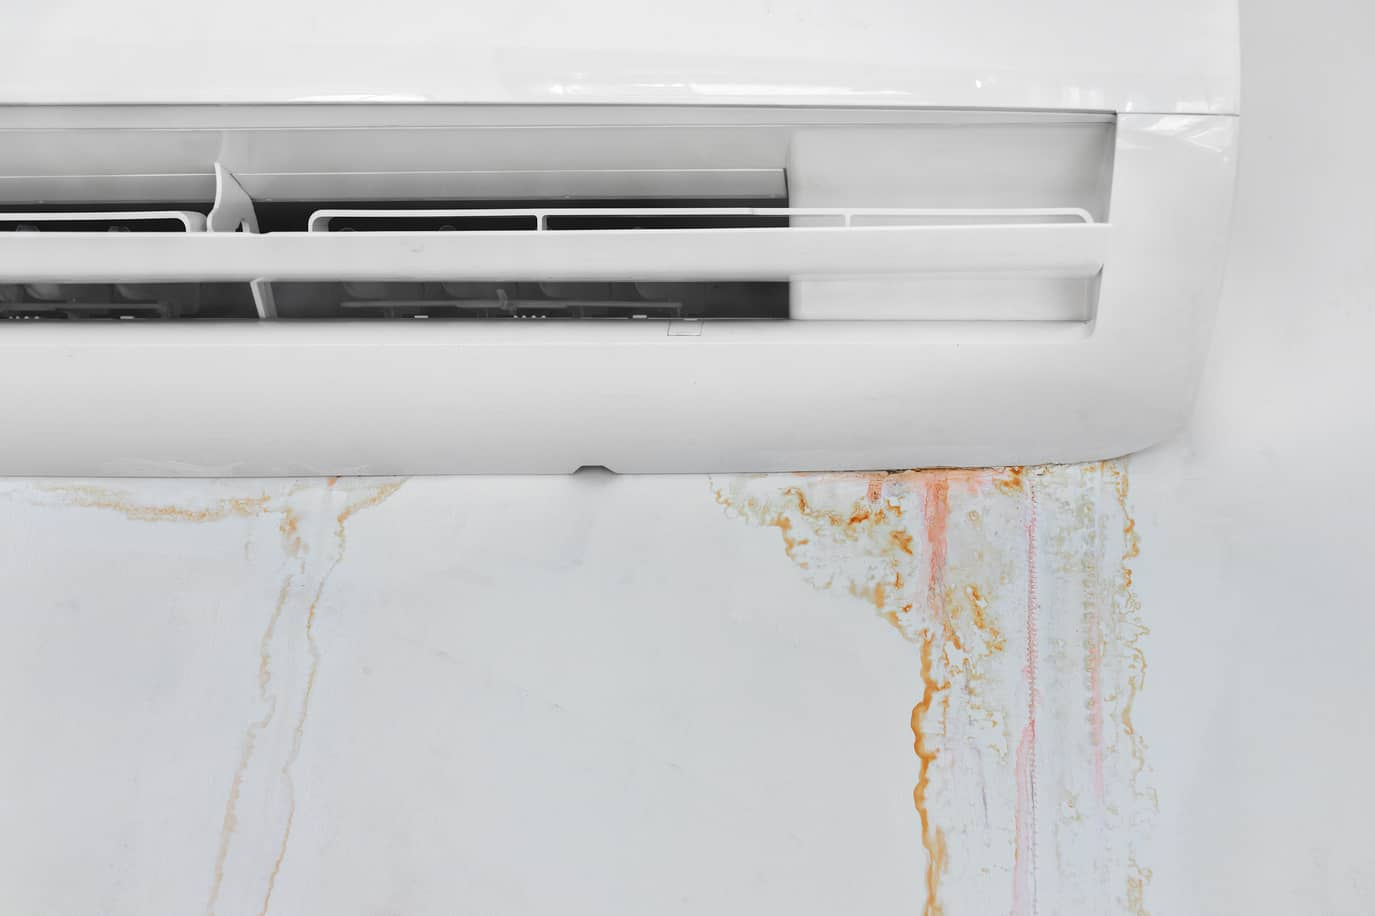 AC Leaking Water and leaving water stains on the wall